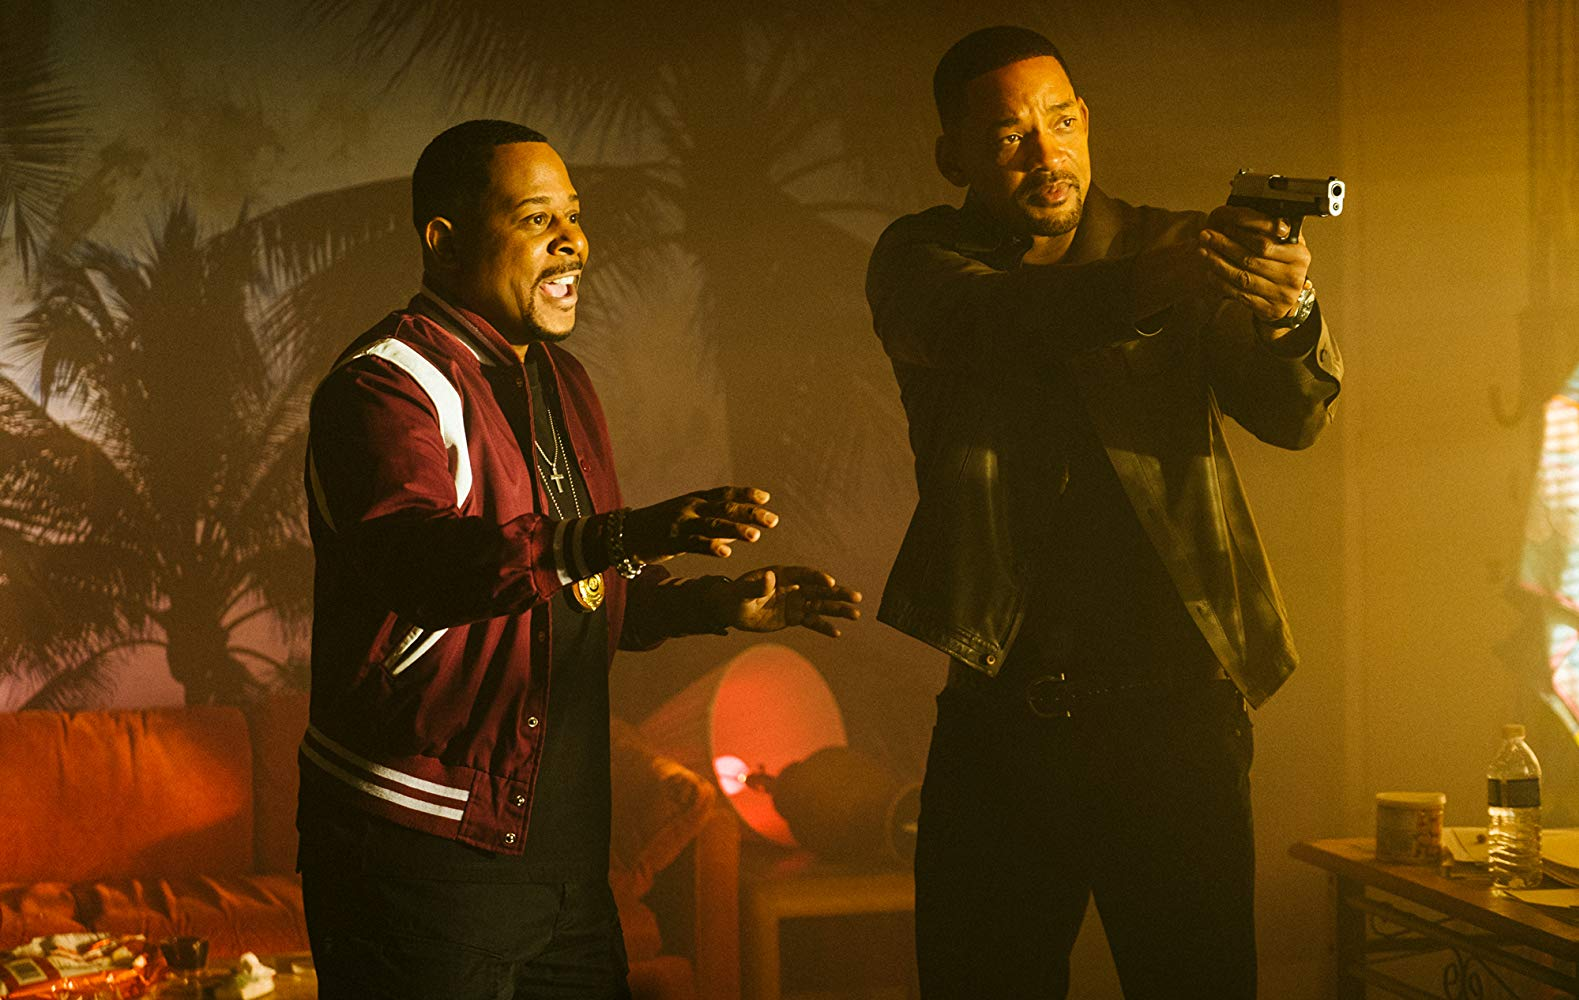 bad boys for life movie review.jpg